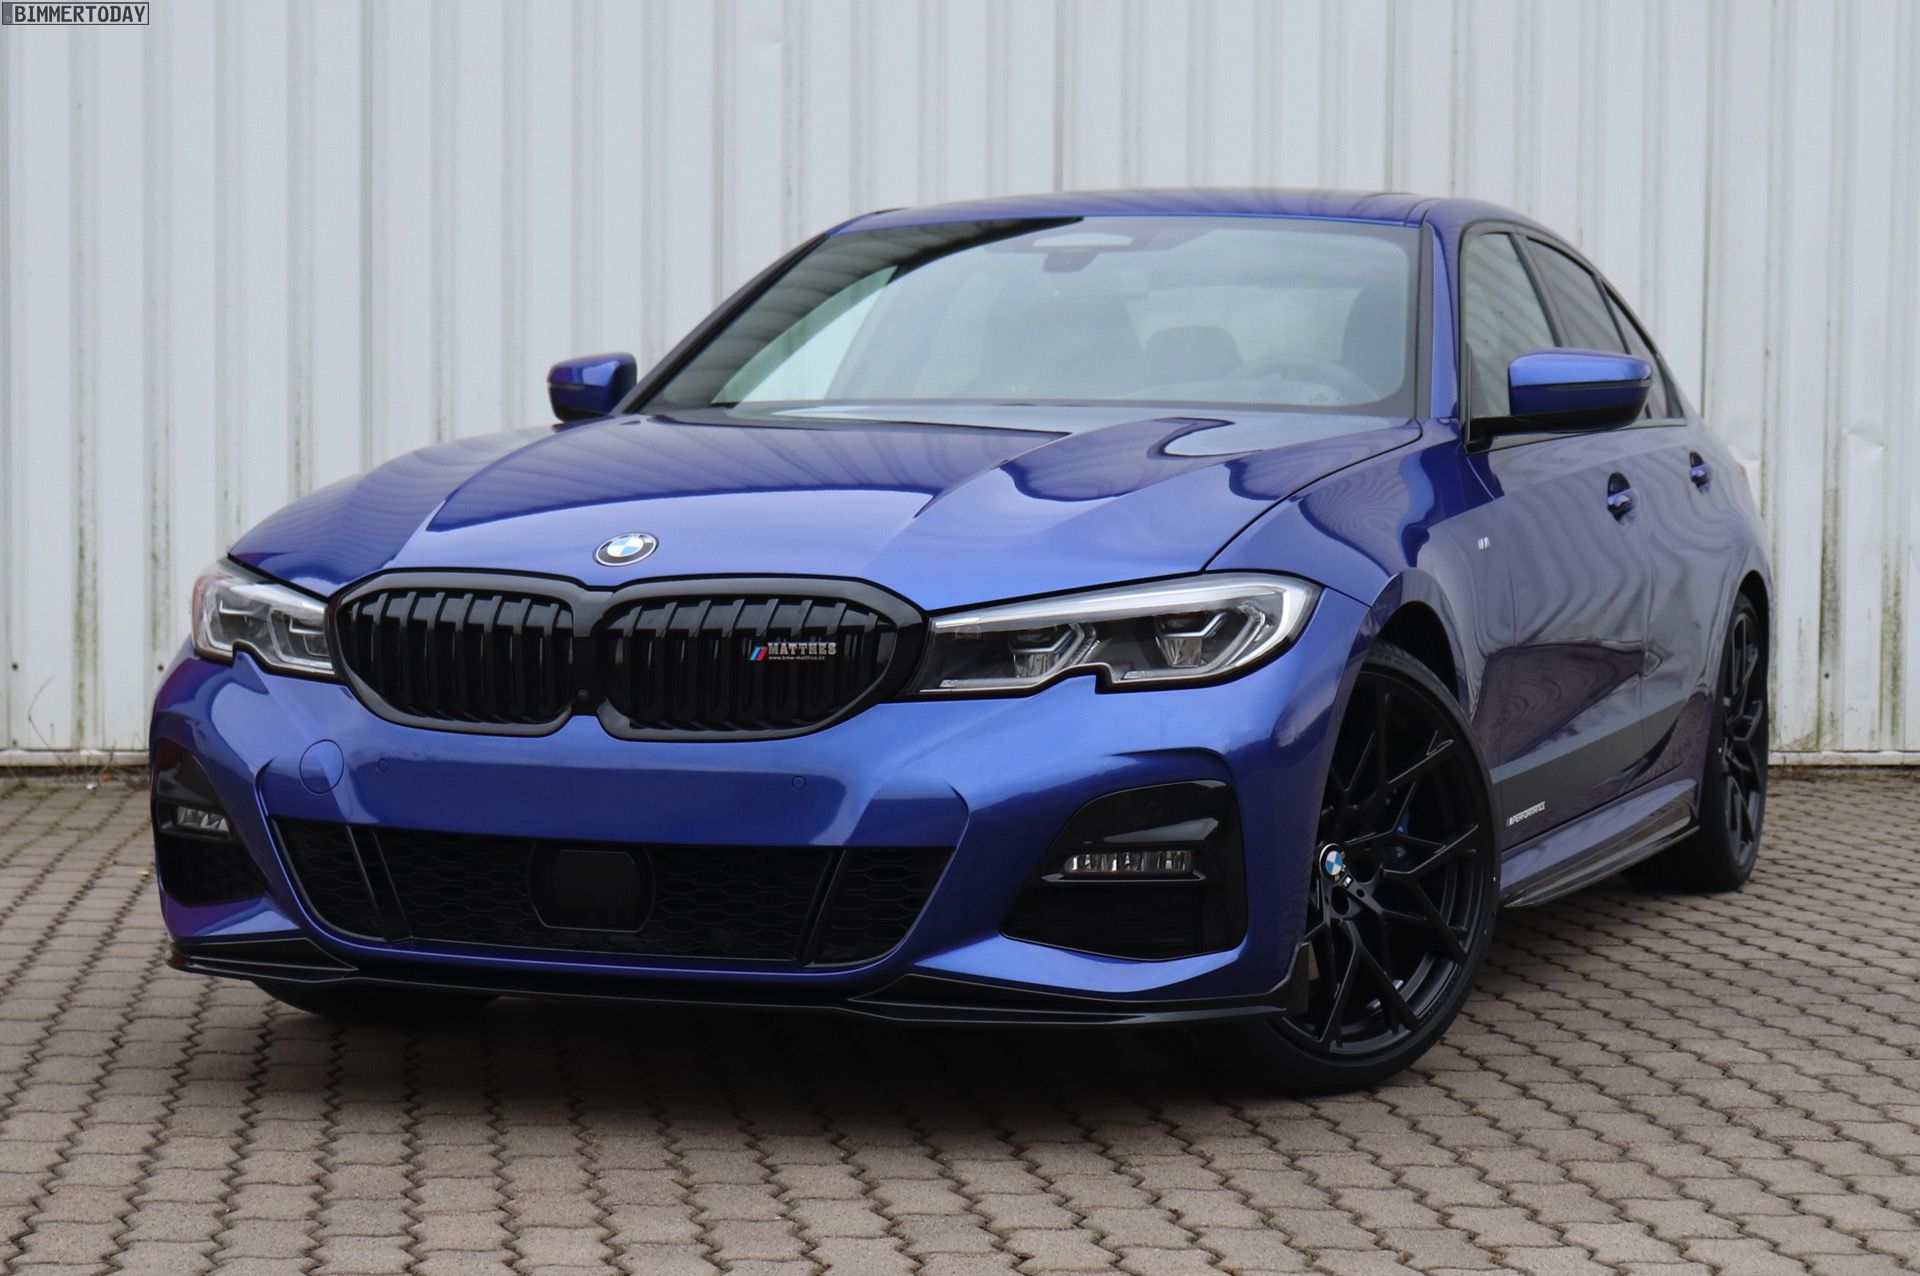 Bmw 330i In Portimao Blue Gets Some M Performance Upgrades Bmw